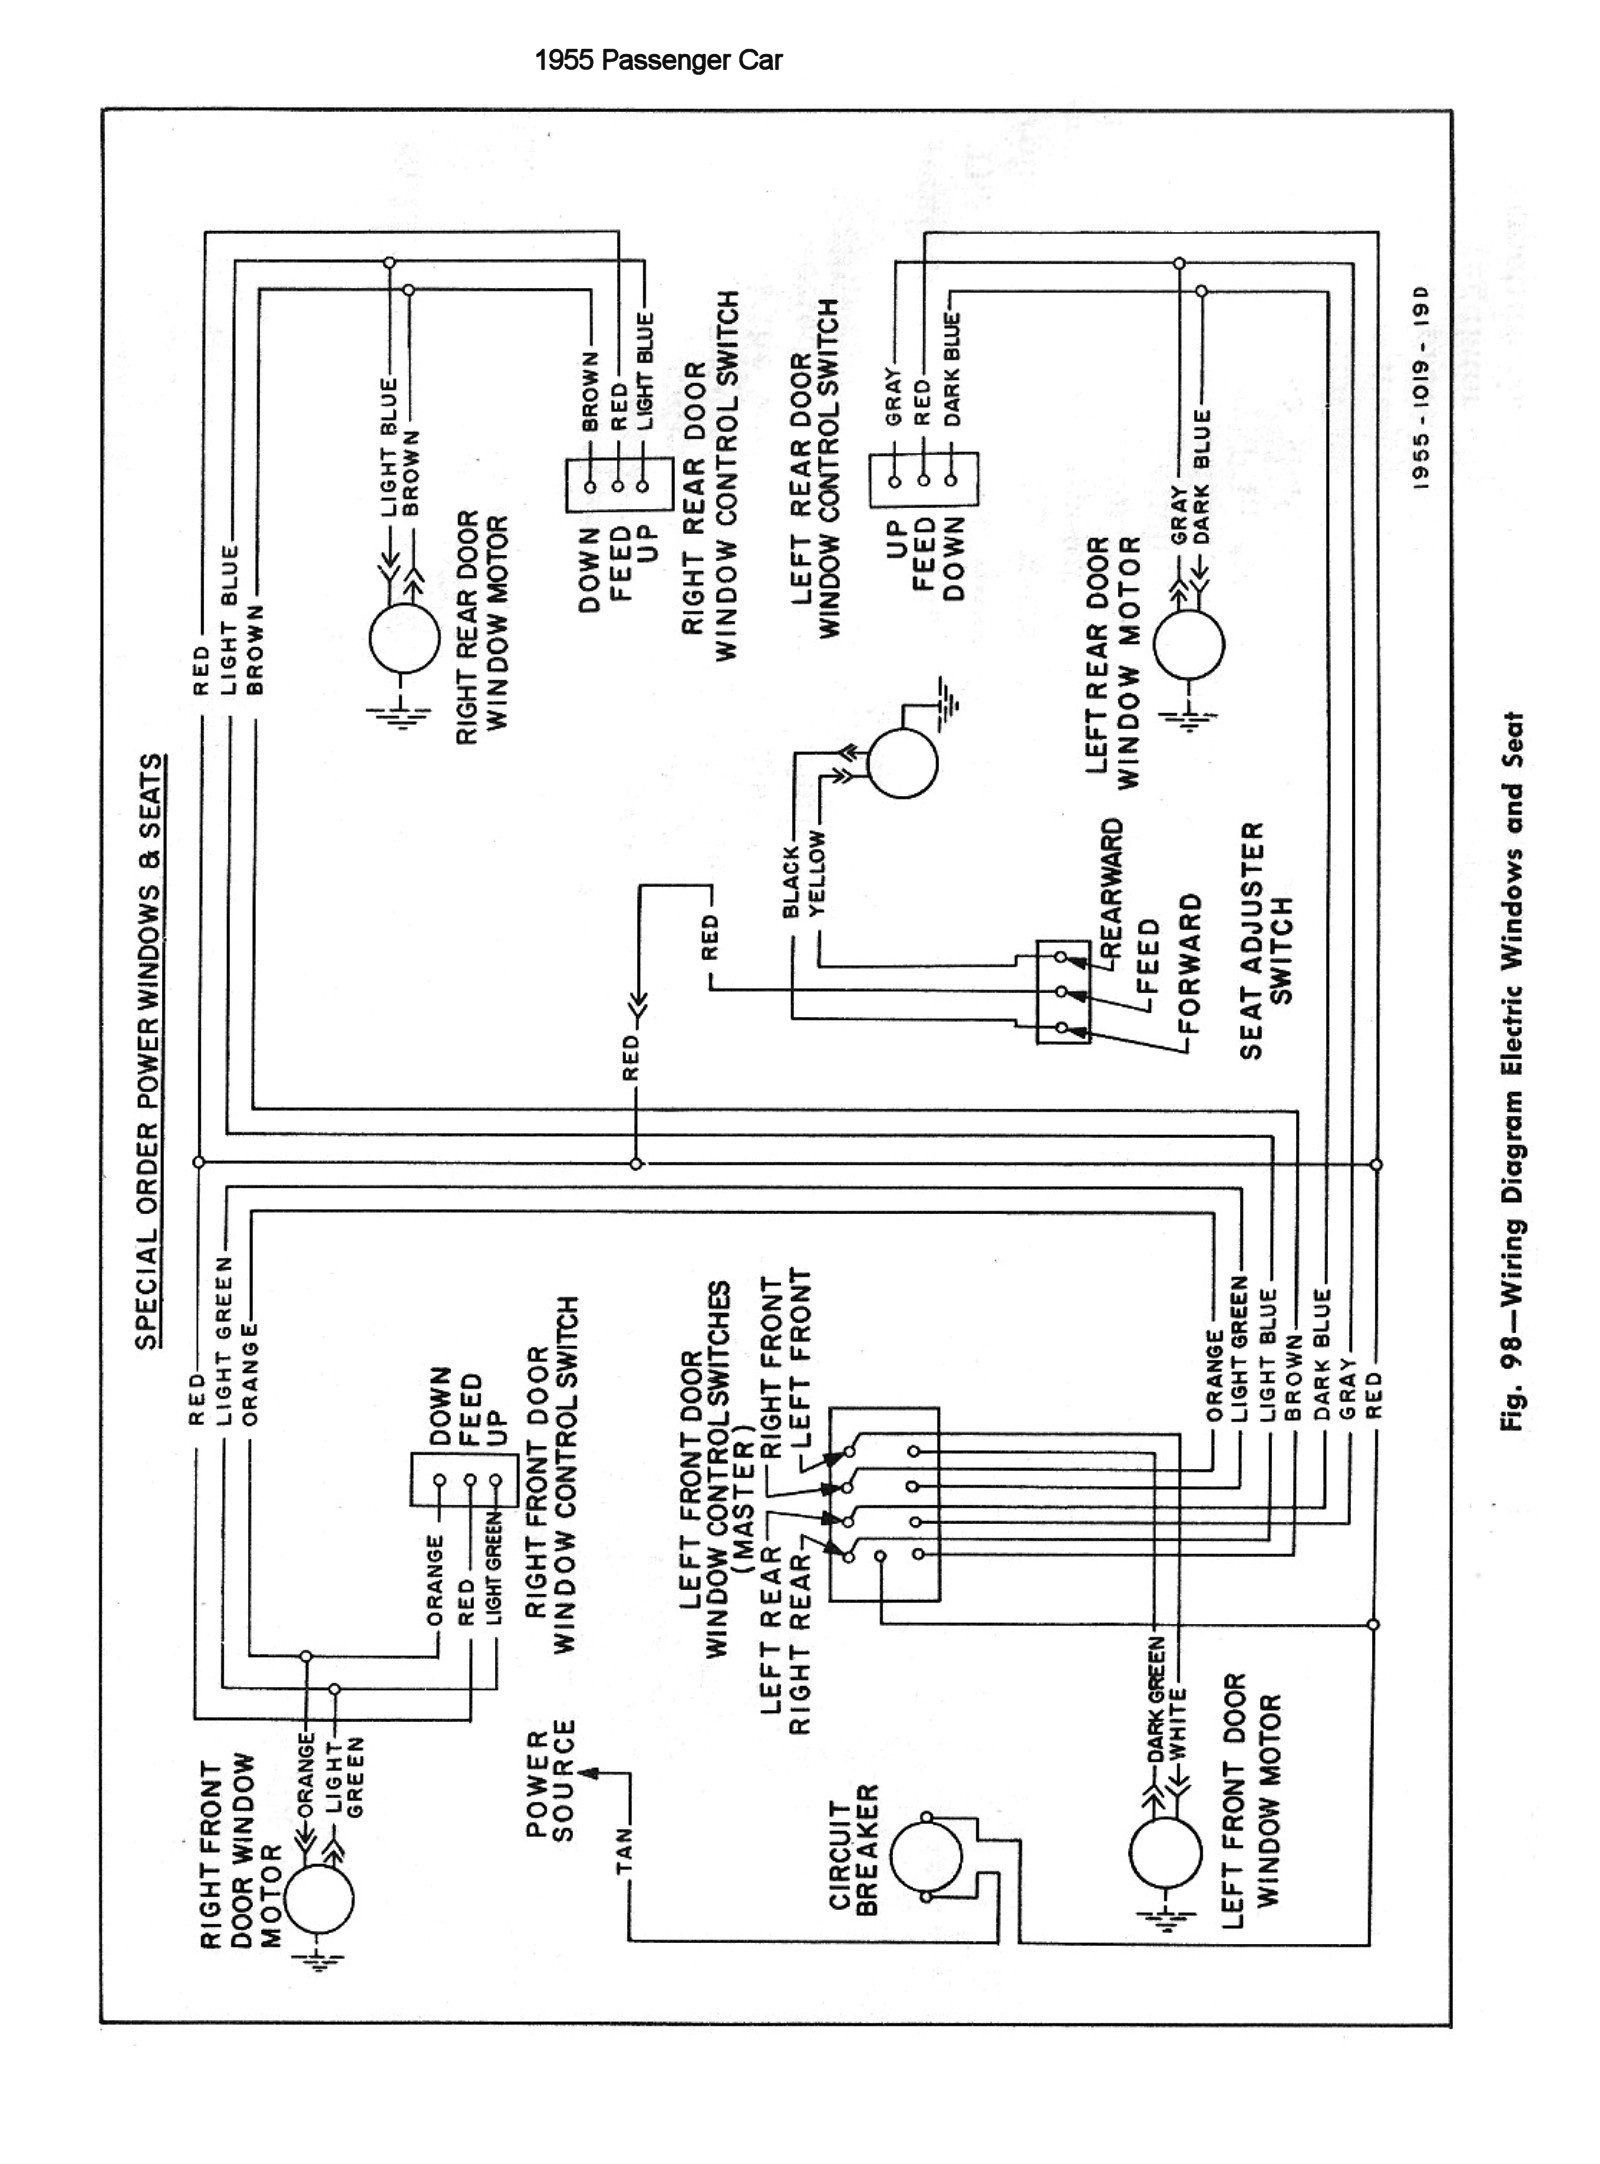 1955 chevy turn signal wiring diagram wiringdiagram org